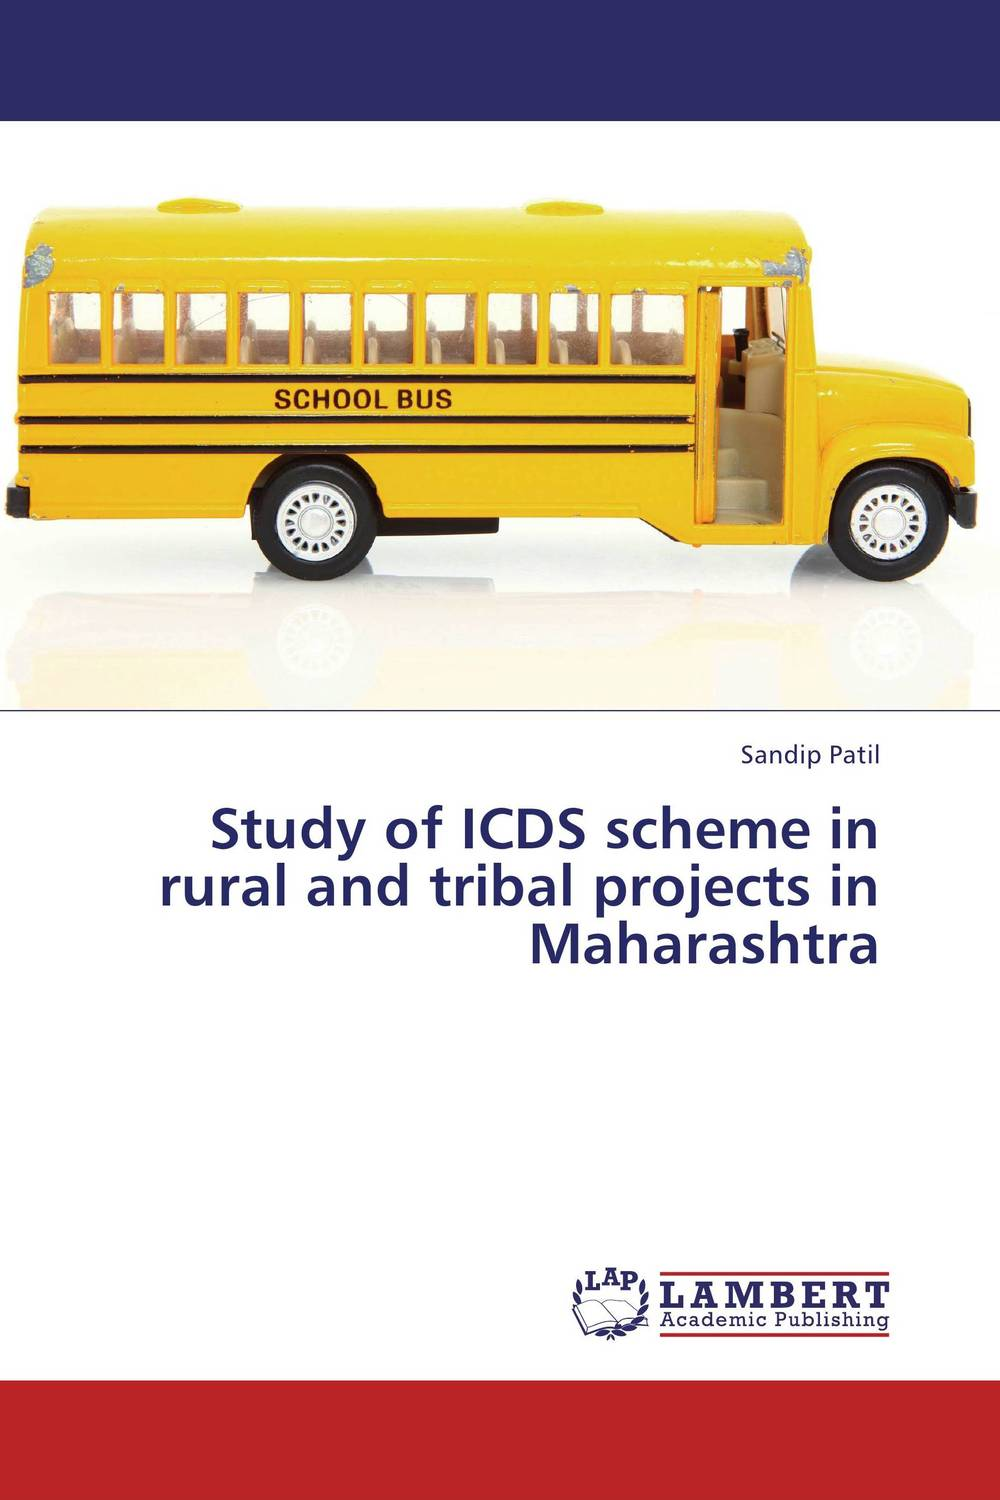 Study of ICDS scheme in rural and tribal projects in Maharashtra deepak howale and kanaklata iyer metrical study of adult human skulls in maharashtra population